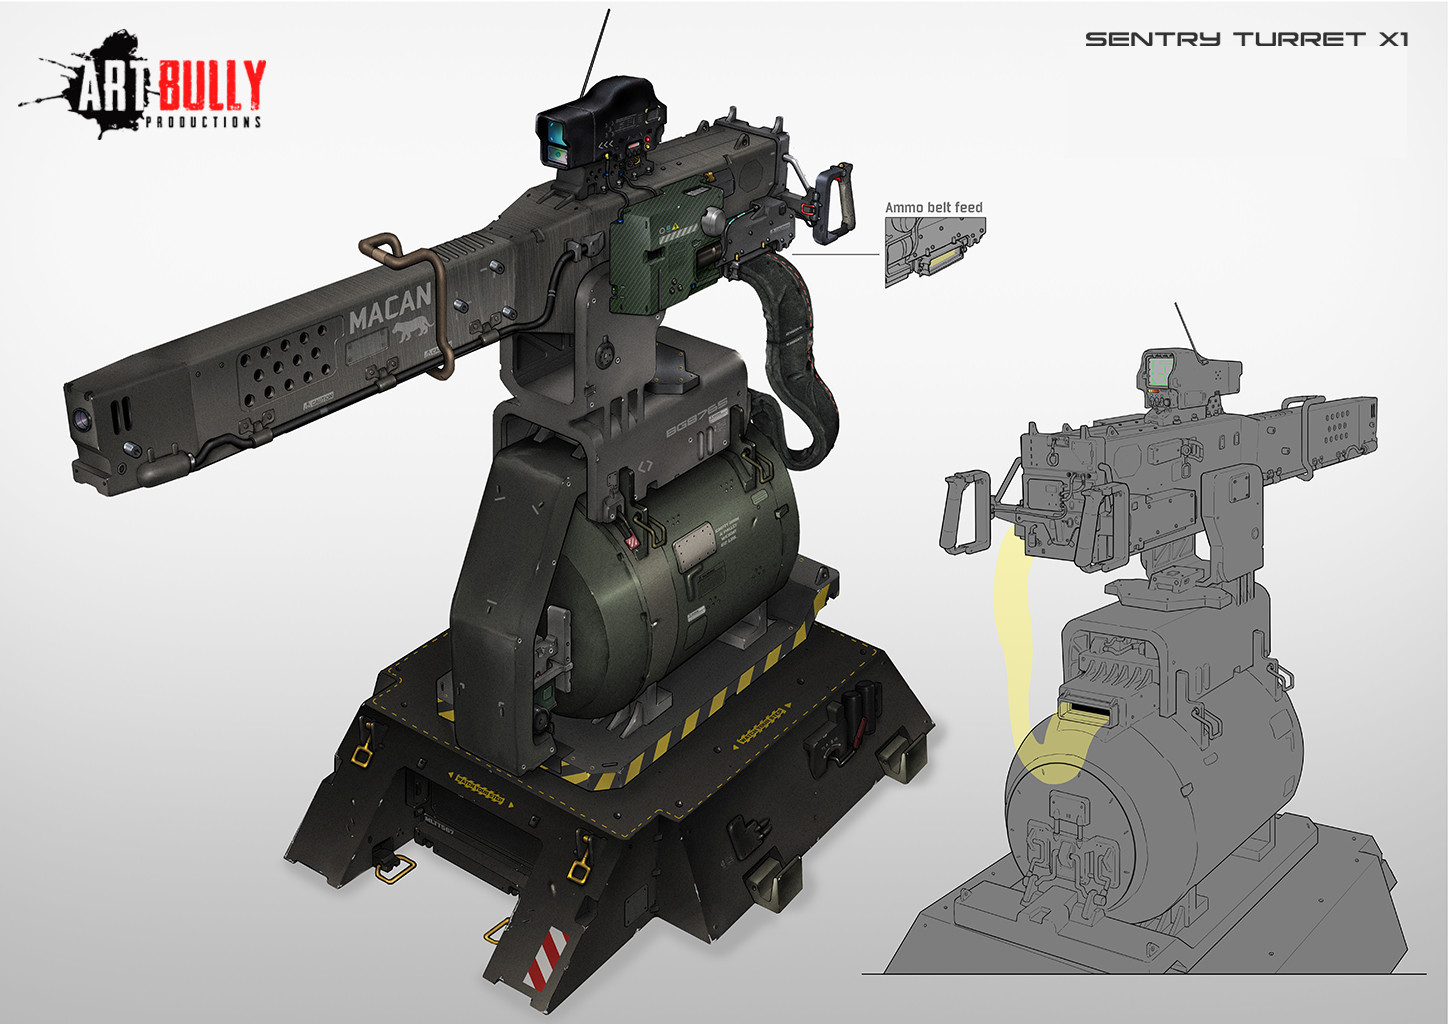 Patrick nuckels art bully productions sentry turret x1 concept art